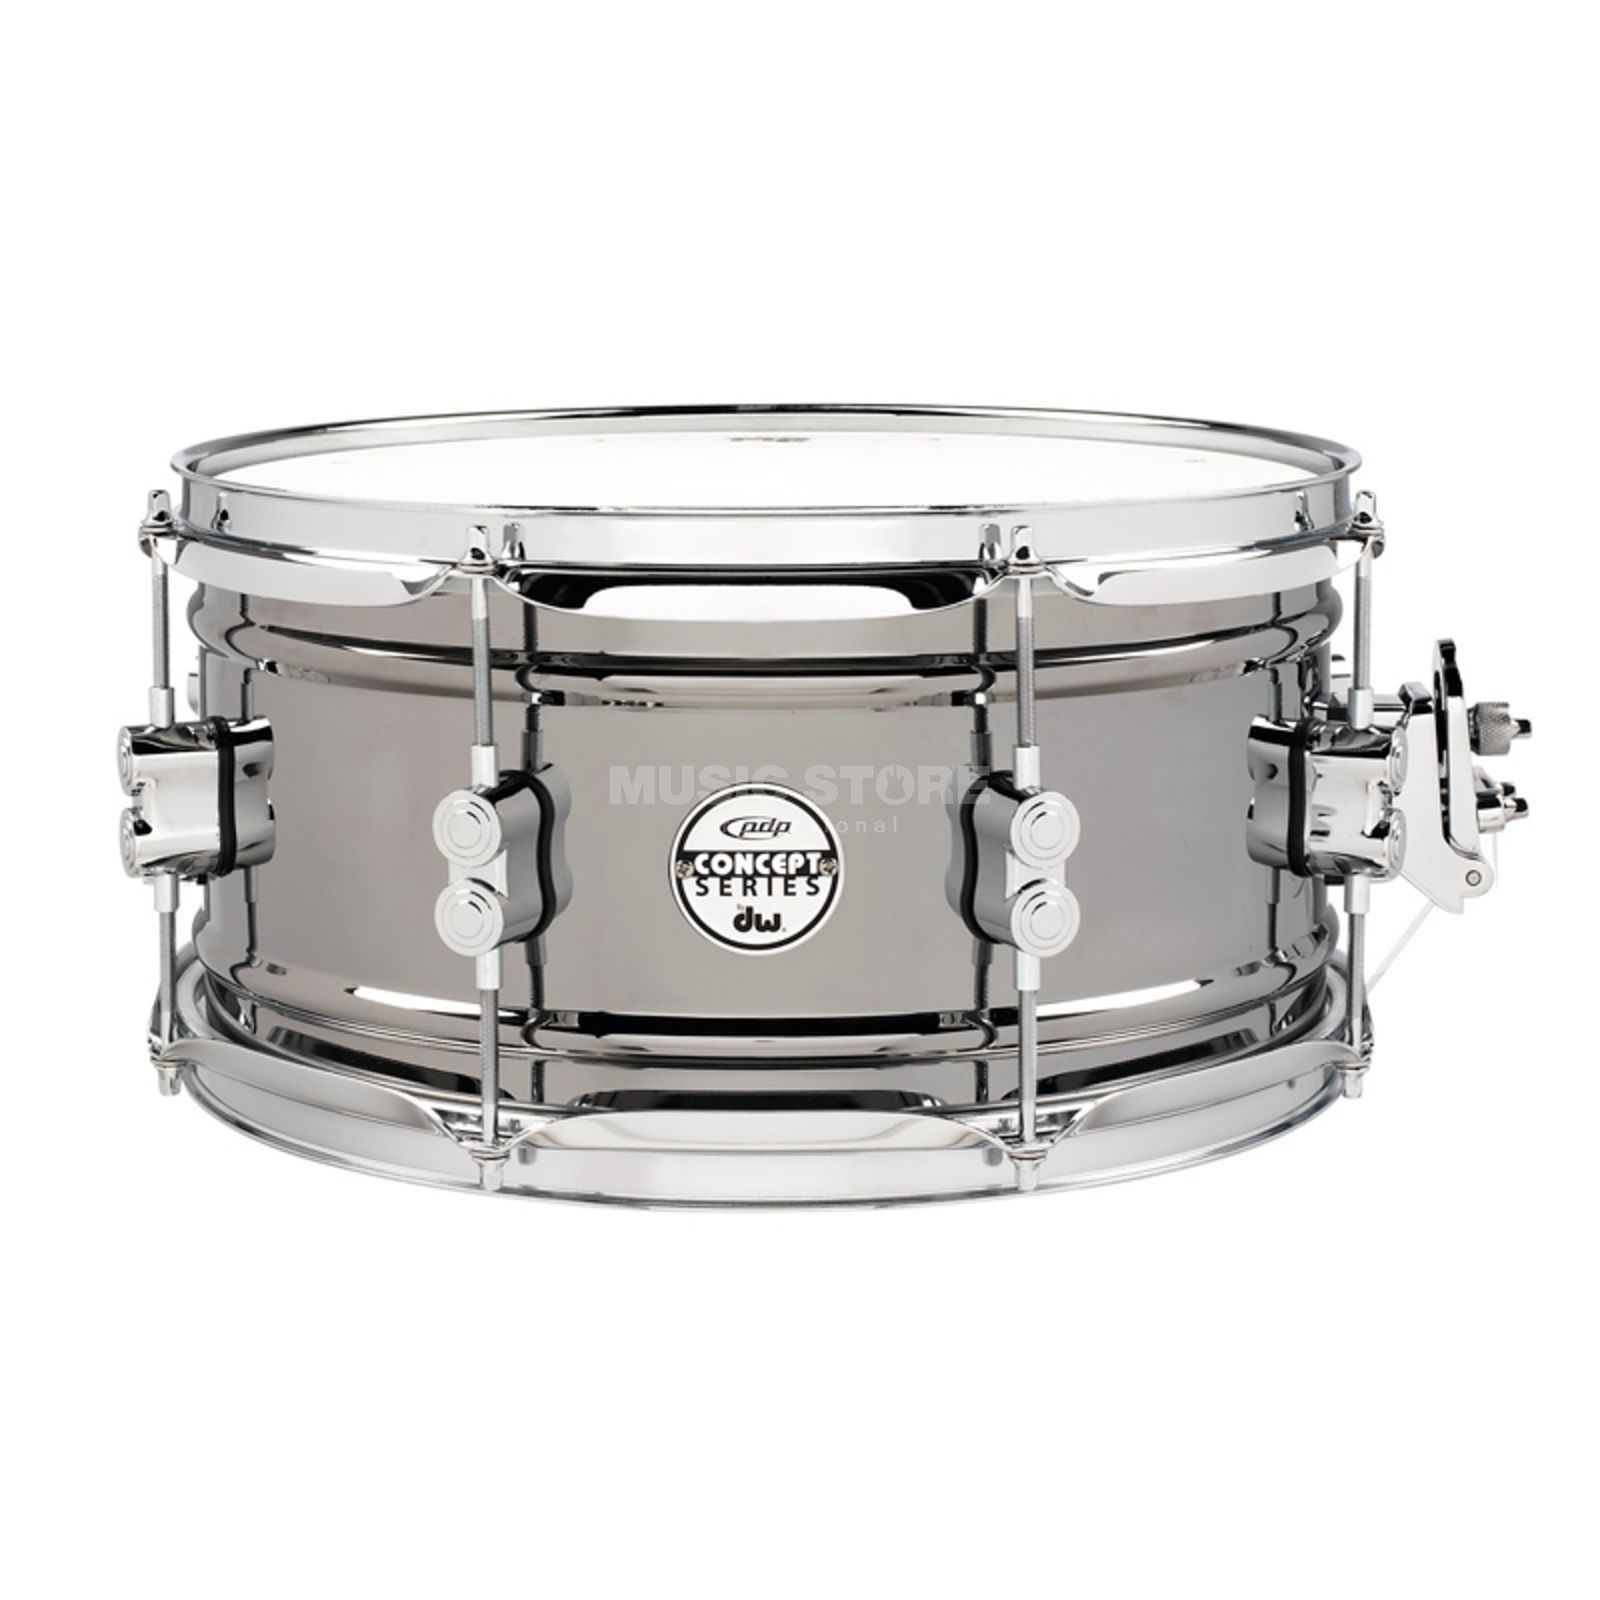 "Drum Workshop PDP Black Nickel Steel Snare 13""x6,5"" Produktbild"